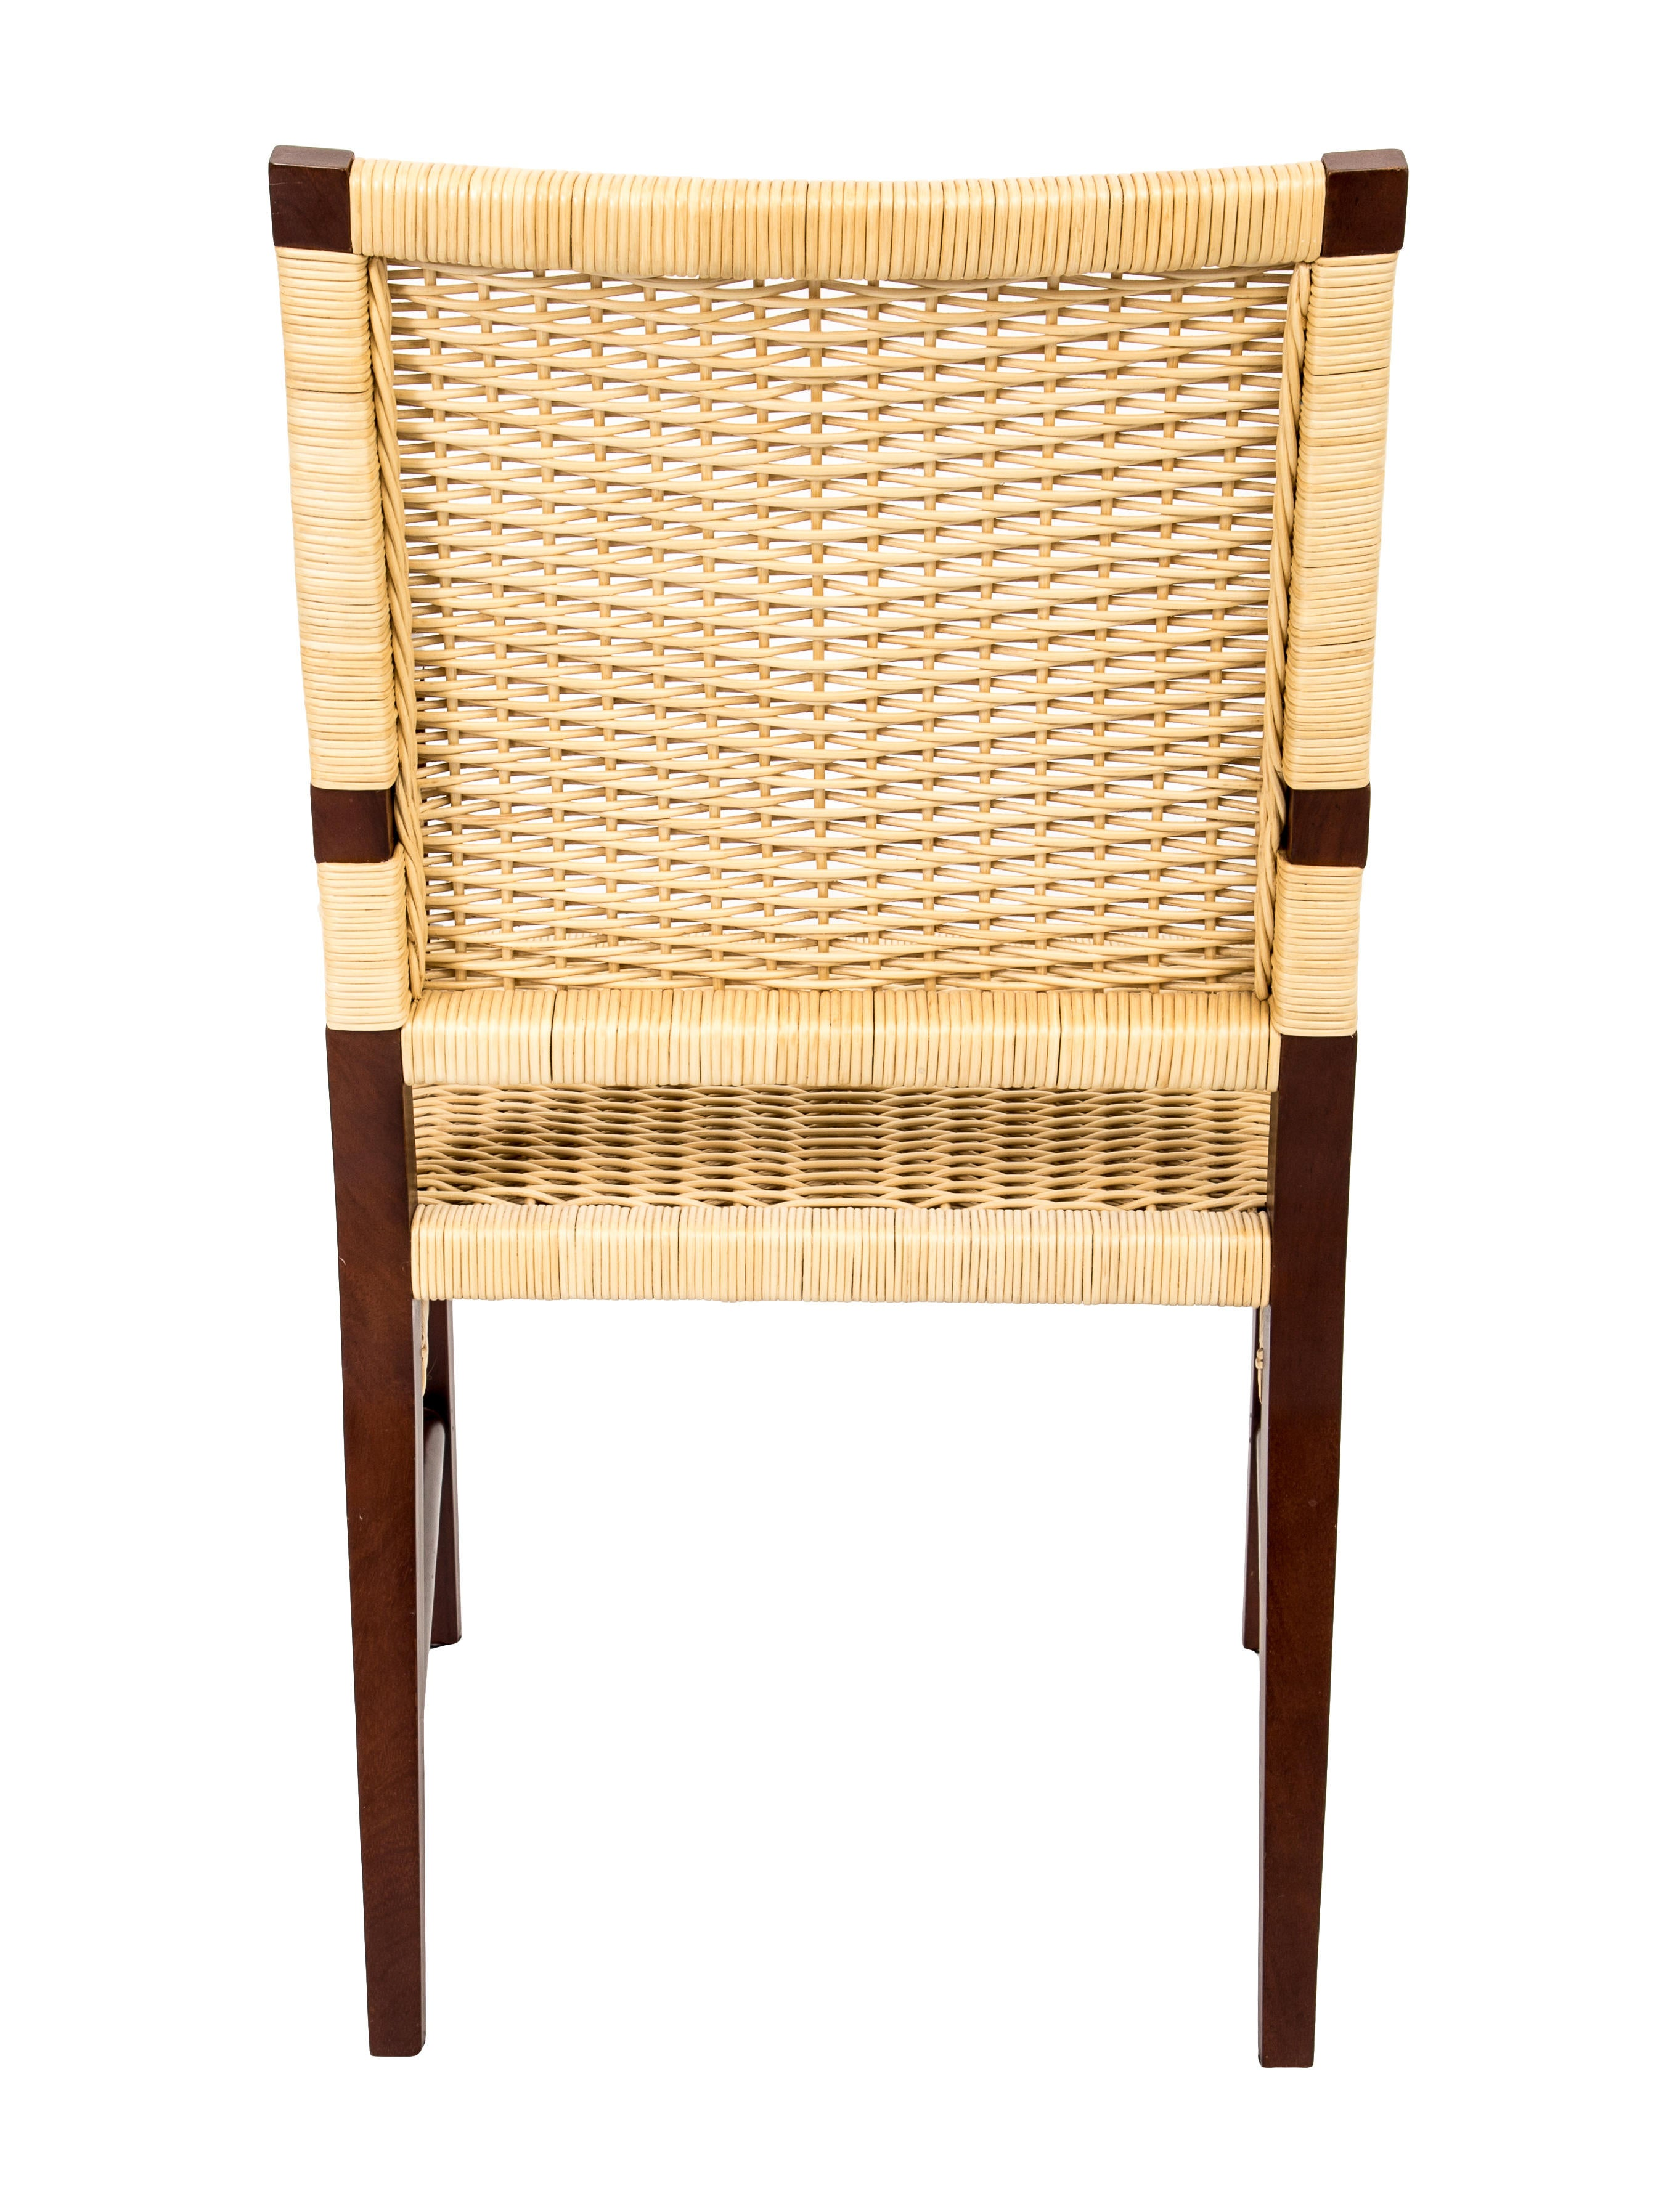 Donghia Merbau Wood Amp Wicker Dining Chairs Furniture